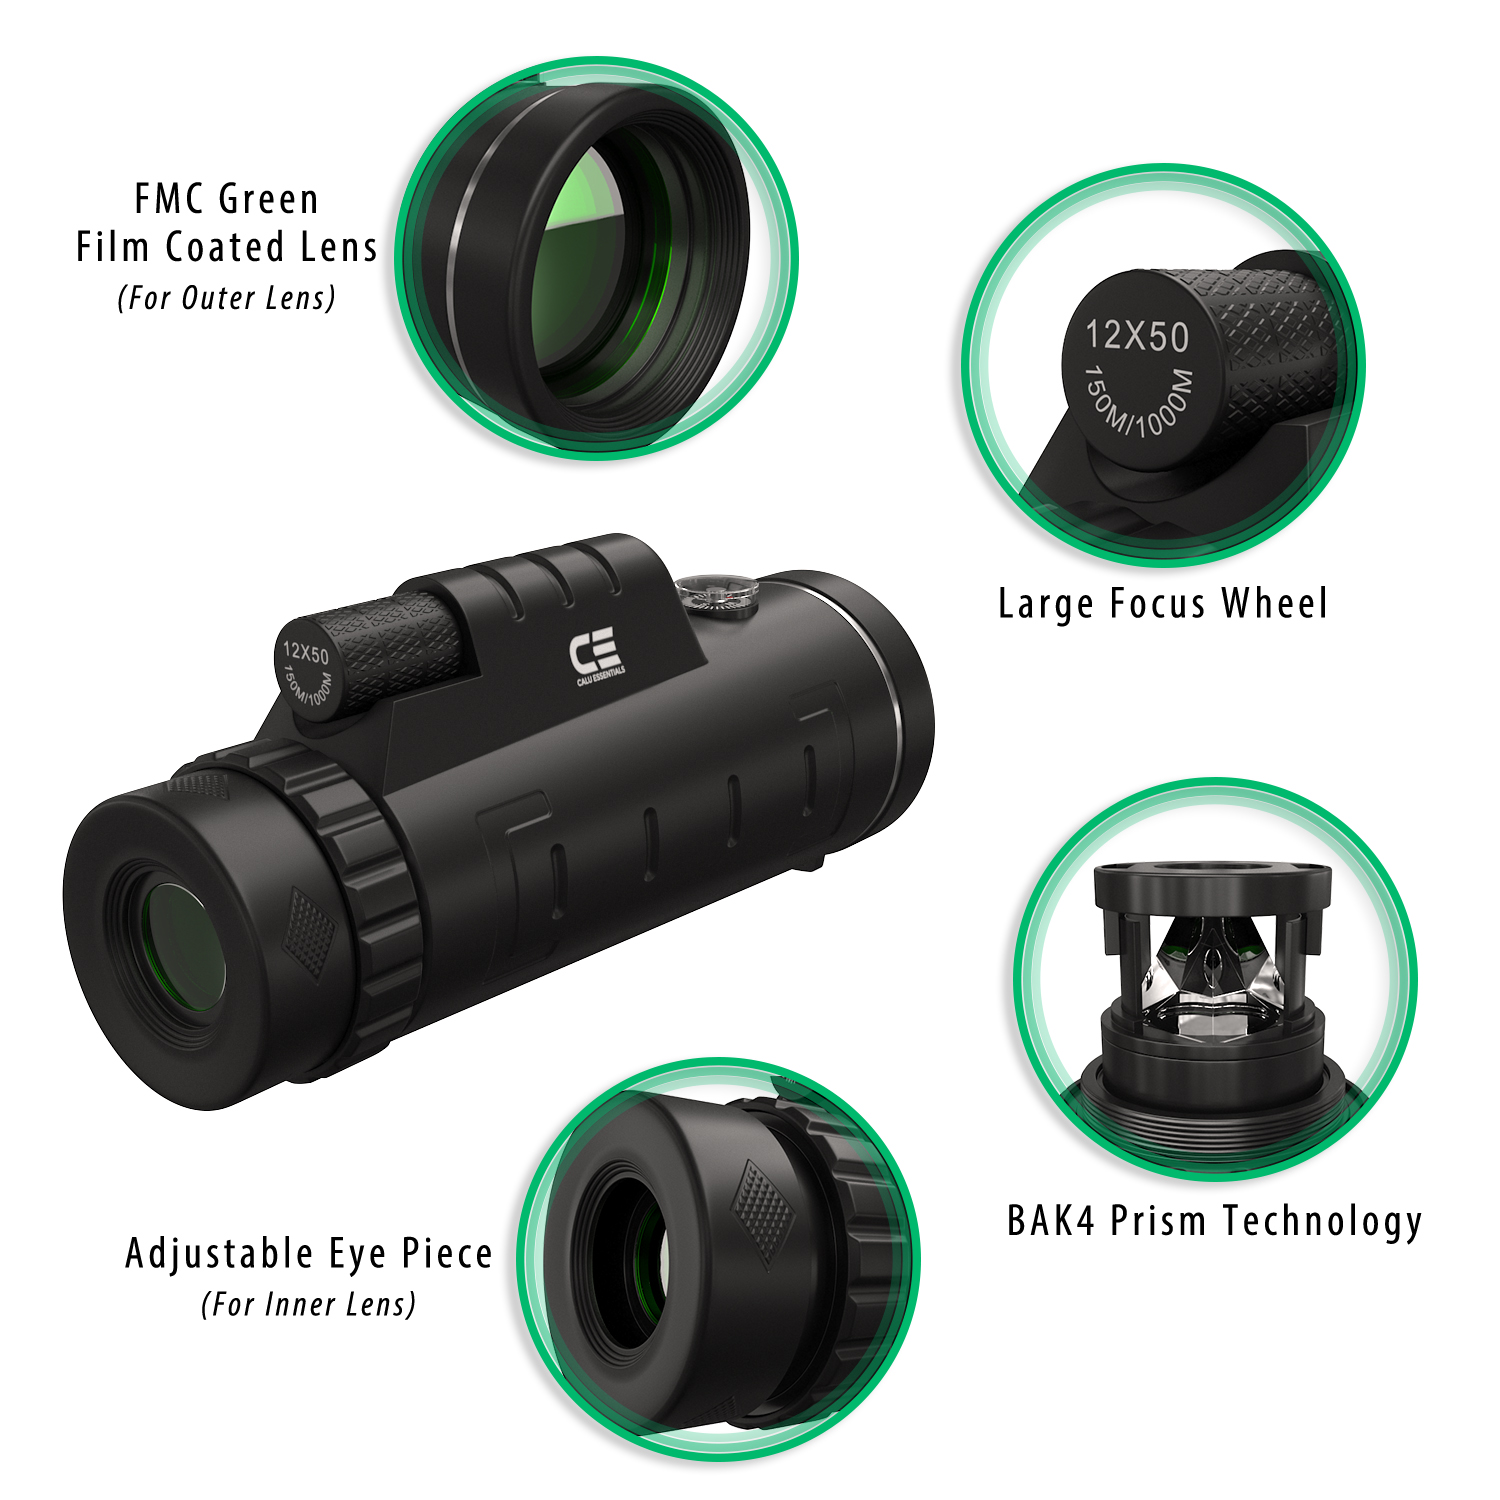 Monocular telescope info-graphic 3D design showing product features